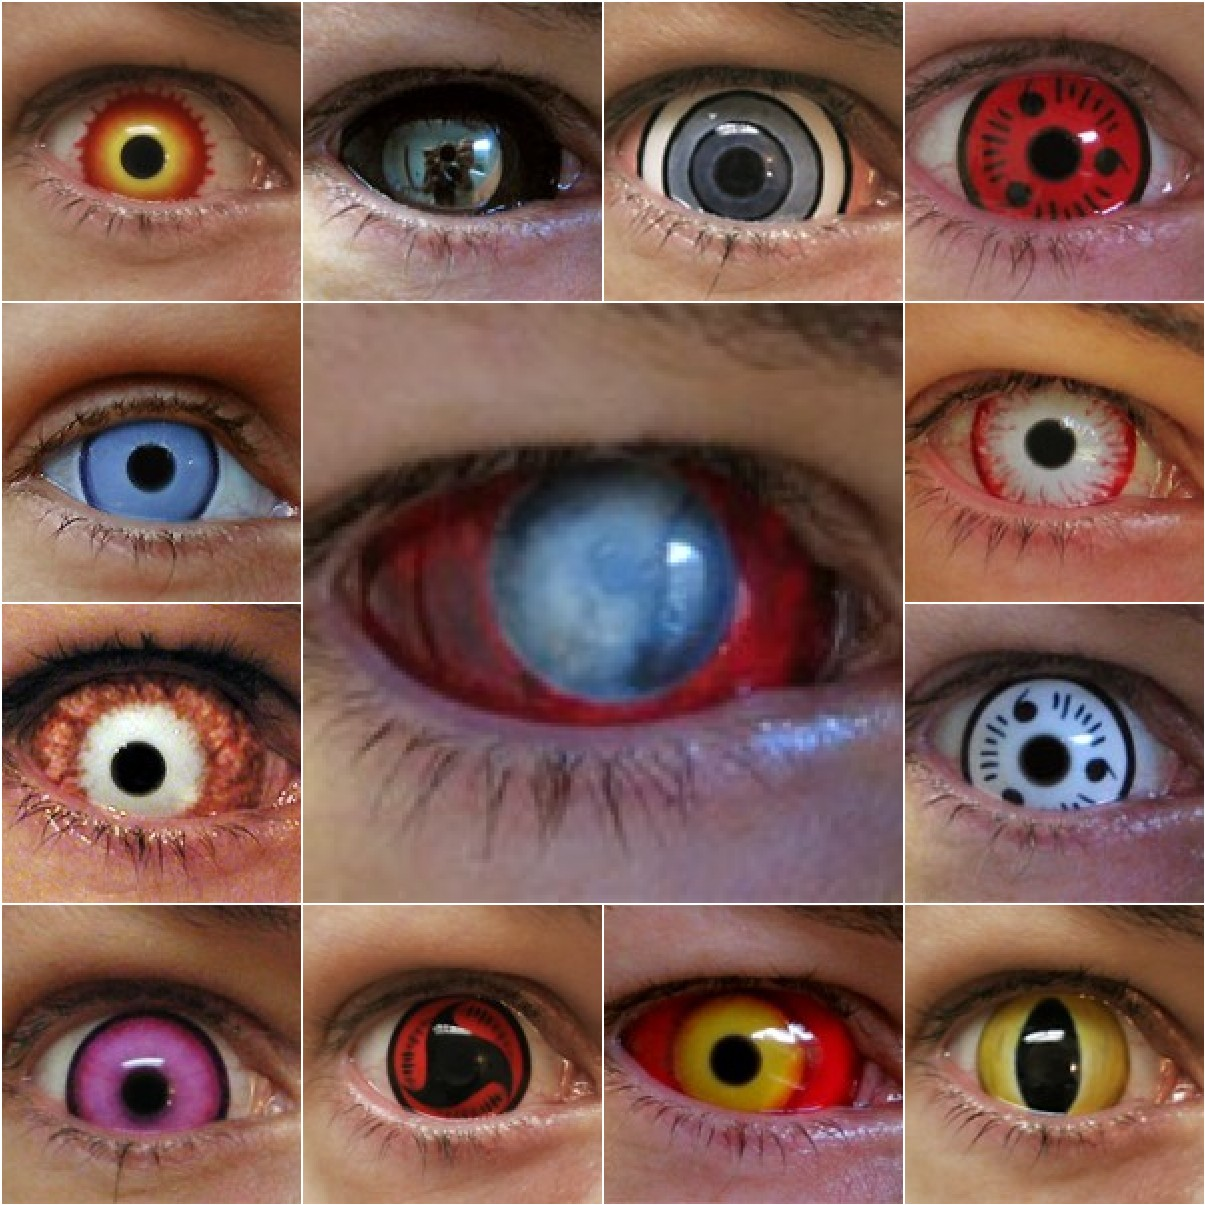 Crazy Halloween Contacts flames skeletalteeth eye l costume contacts 1000 Images About Terrifying Contacts For Halloween On Pinterest Contact Lens Halloween Contacts And Cat Eye Contacts